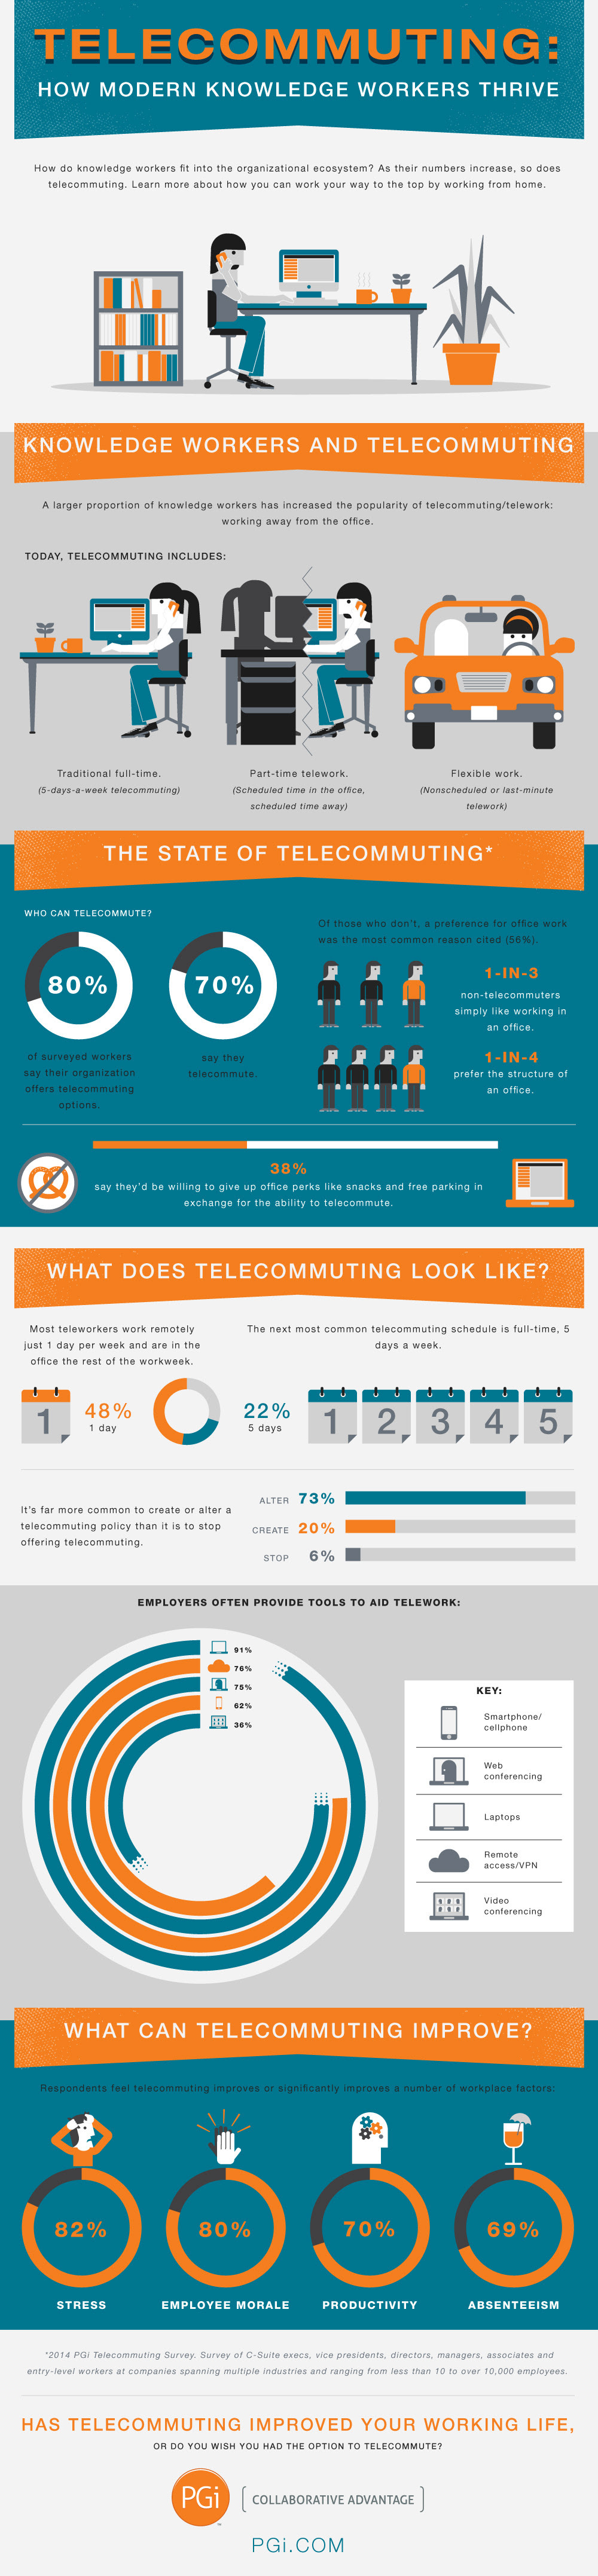 Infographic: Telecommuting: How Modern Knowledge Workers Thrive